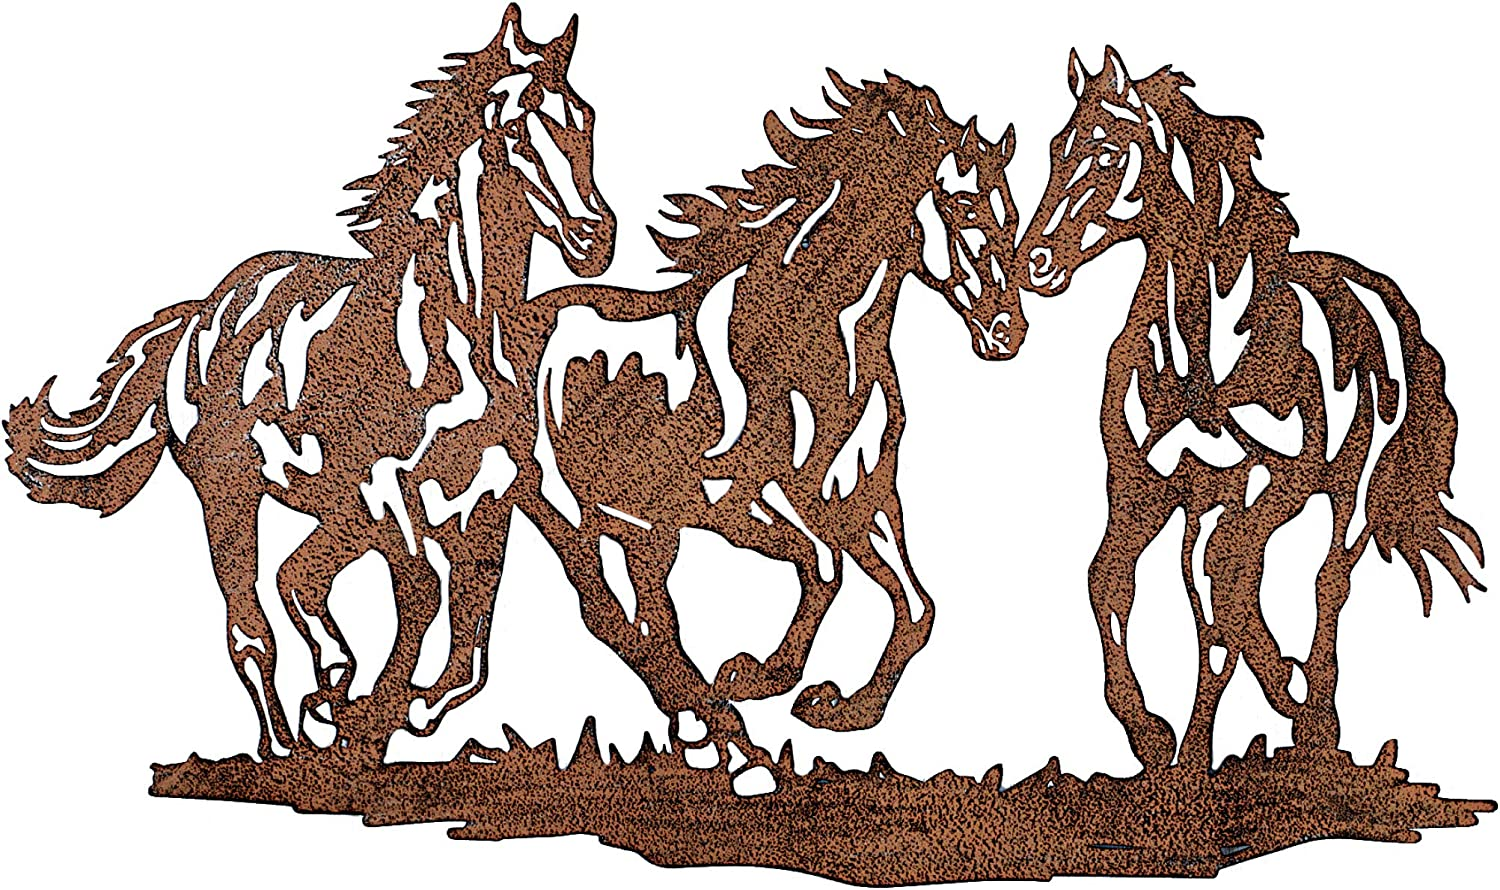 Galloping Wild Horse Trio Rustic Metal Wall Decoration Art for Home, Kitchen & Outdoors - Large Decor - Housewarming Modern Gift